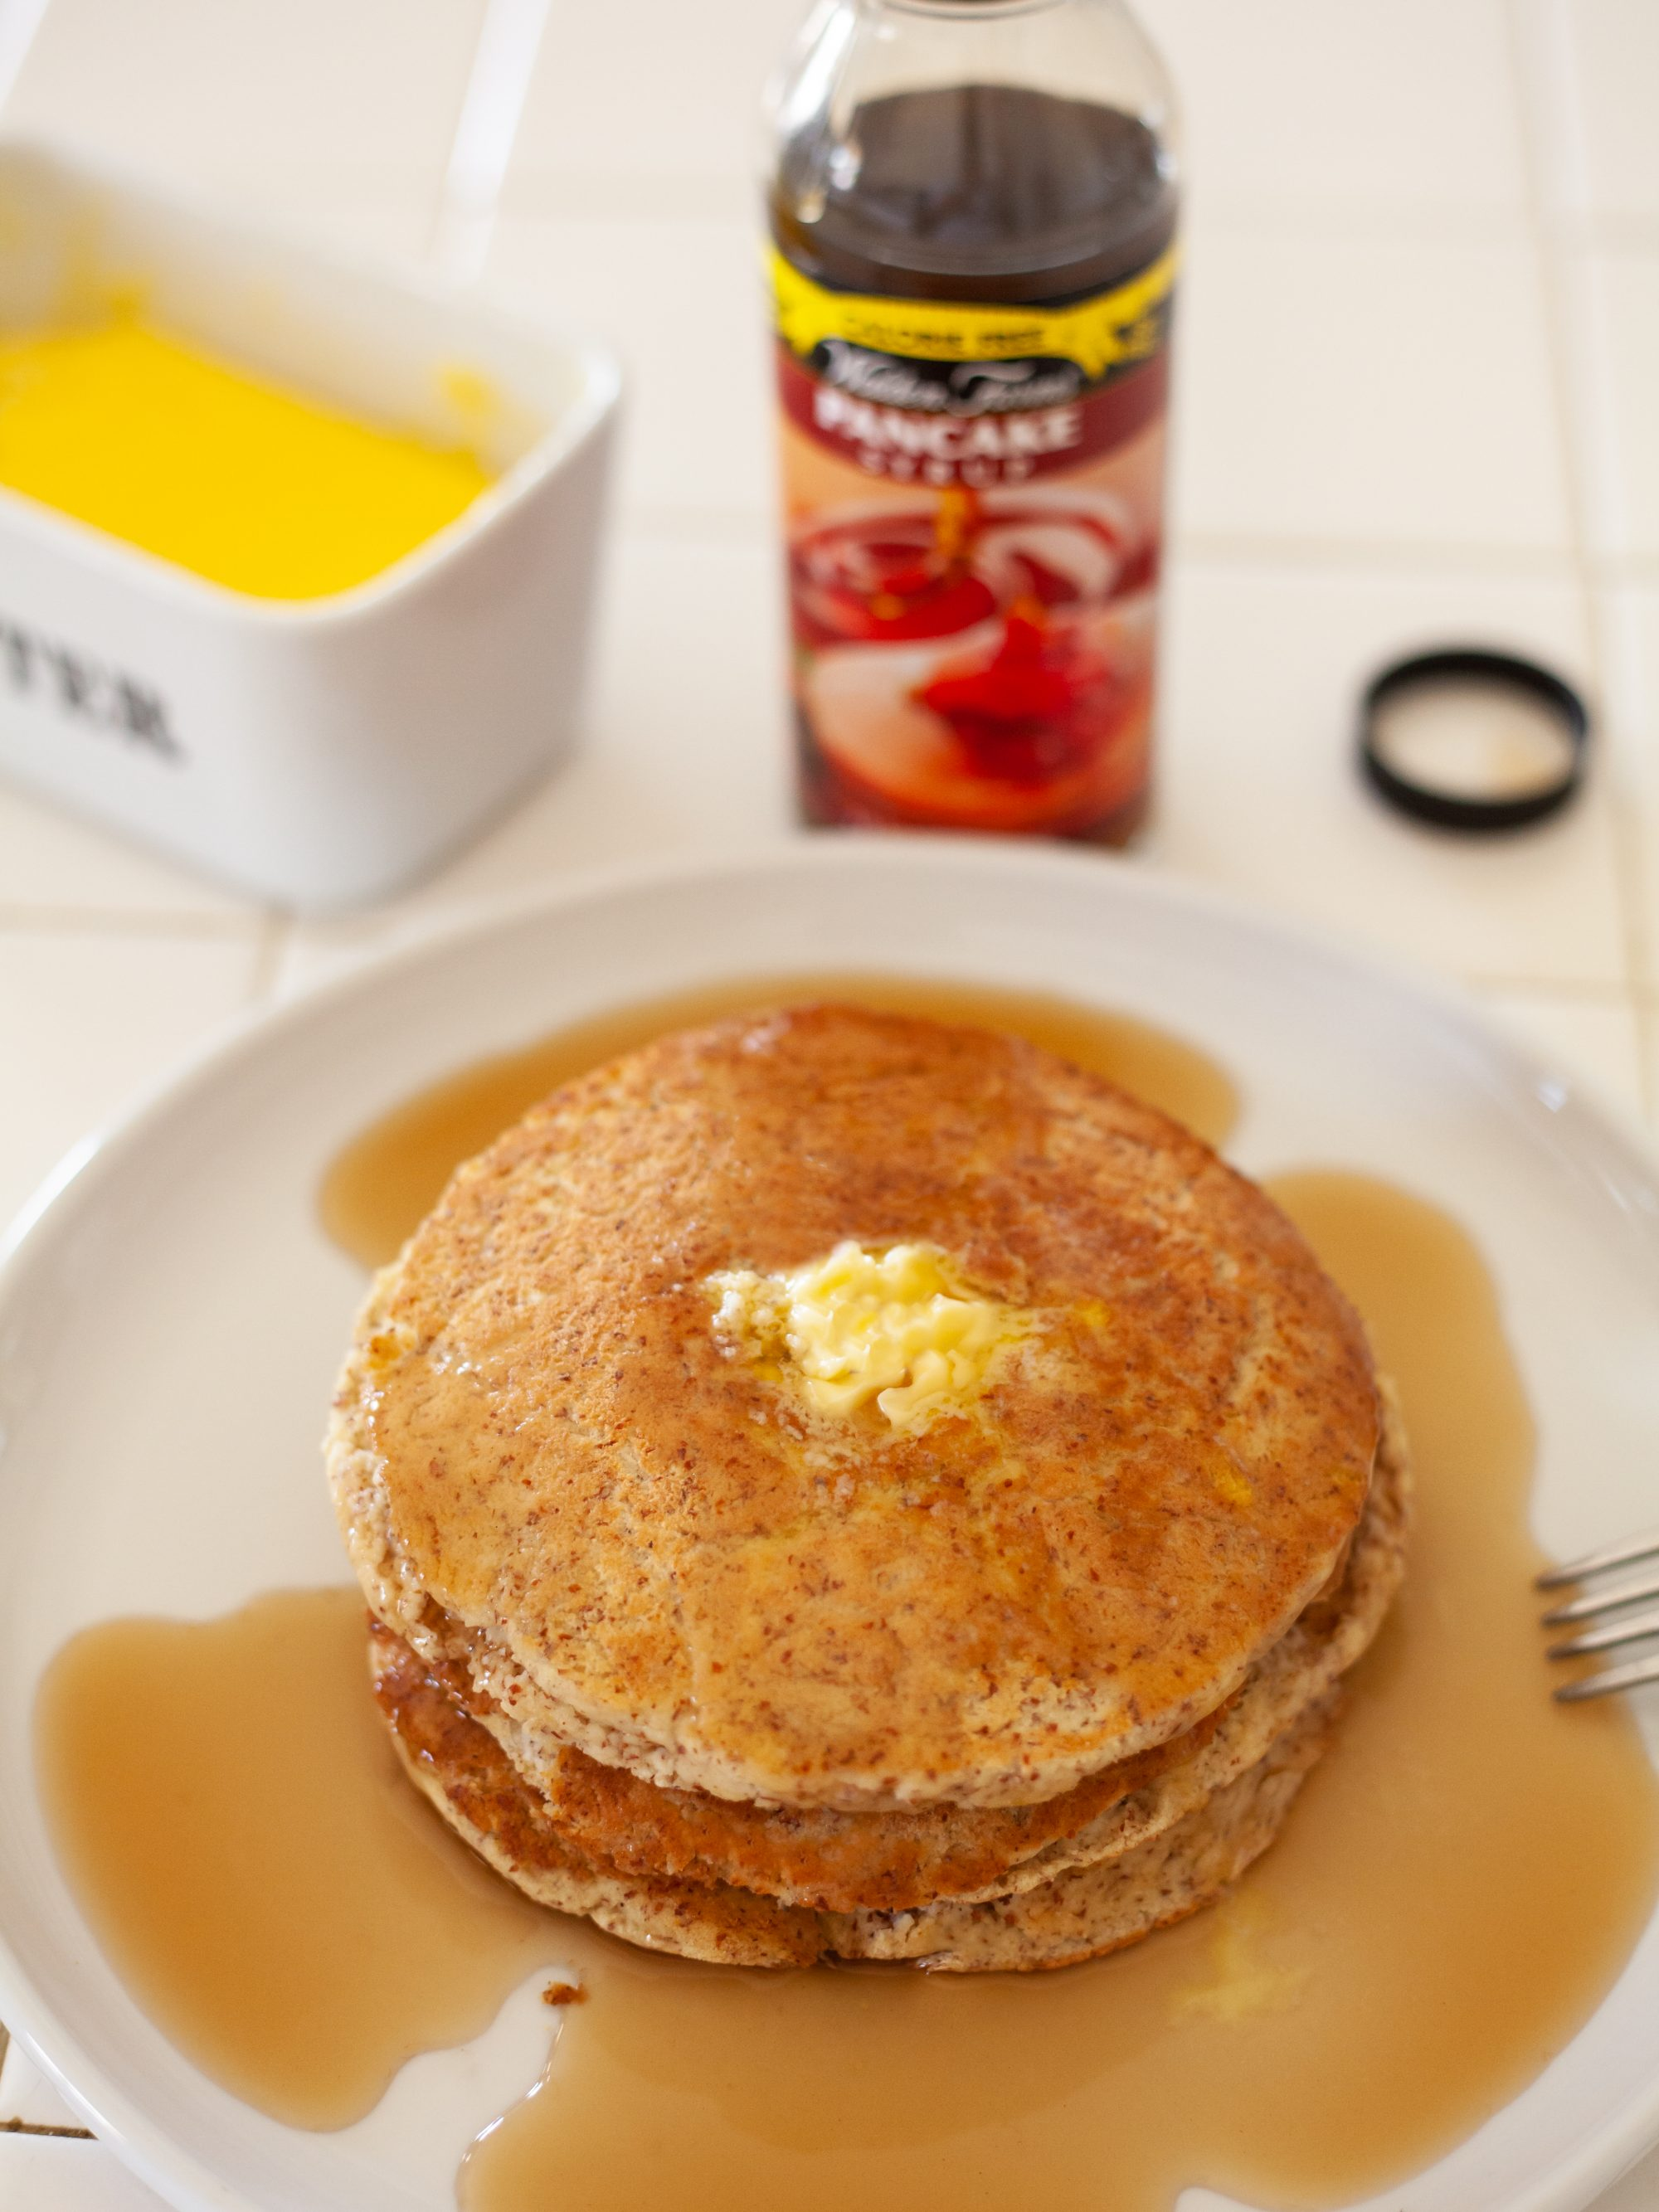 Low-carb pancakes and sugar-free syrup